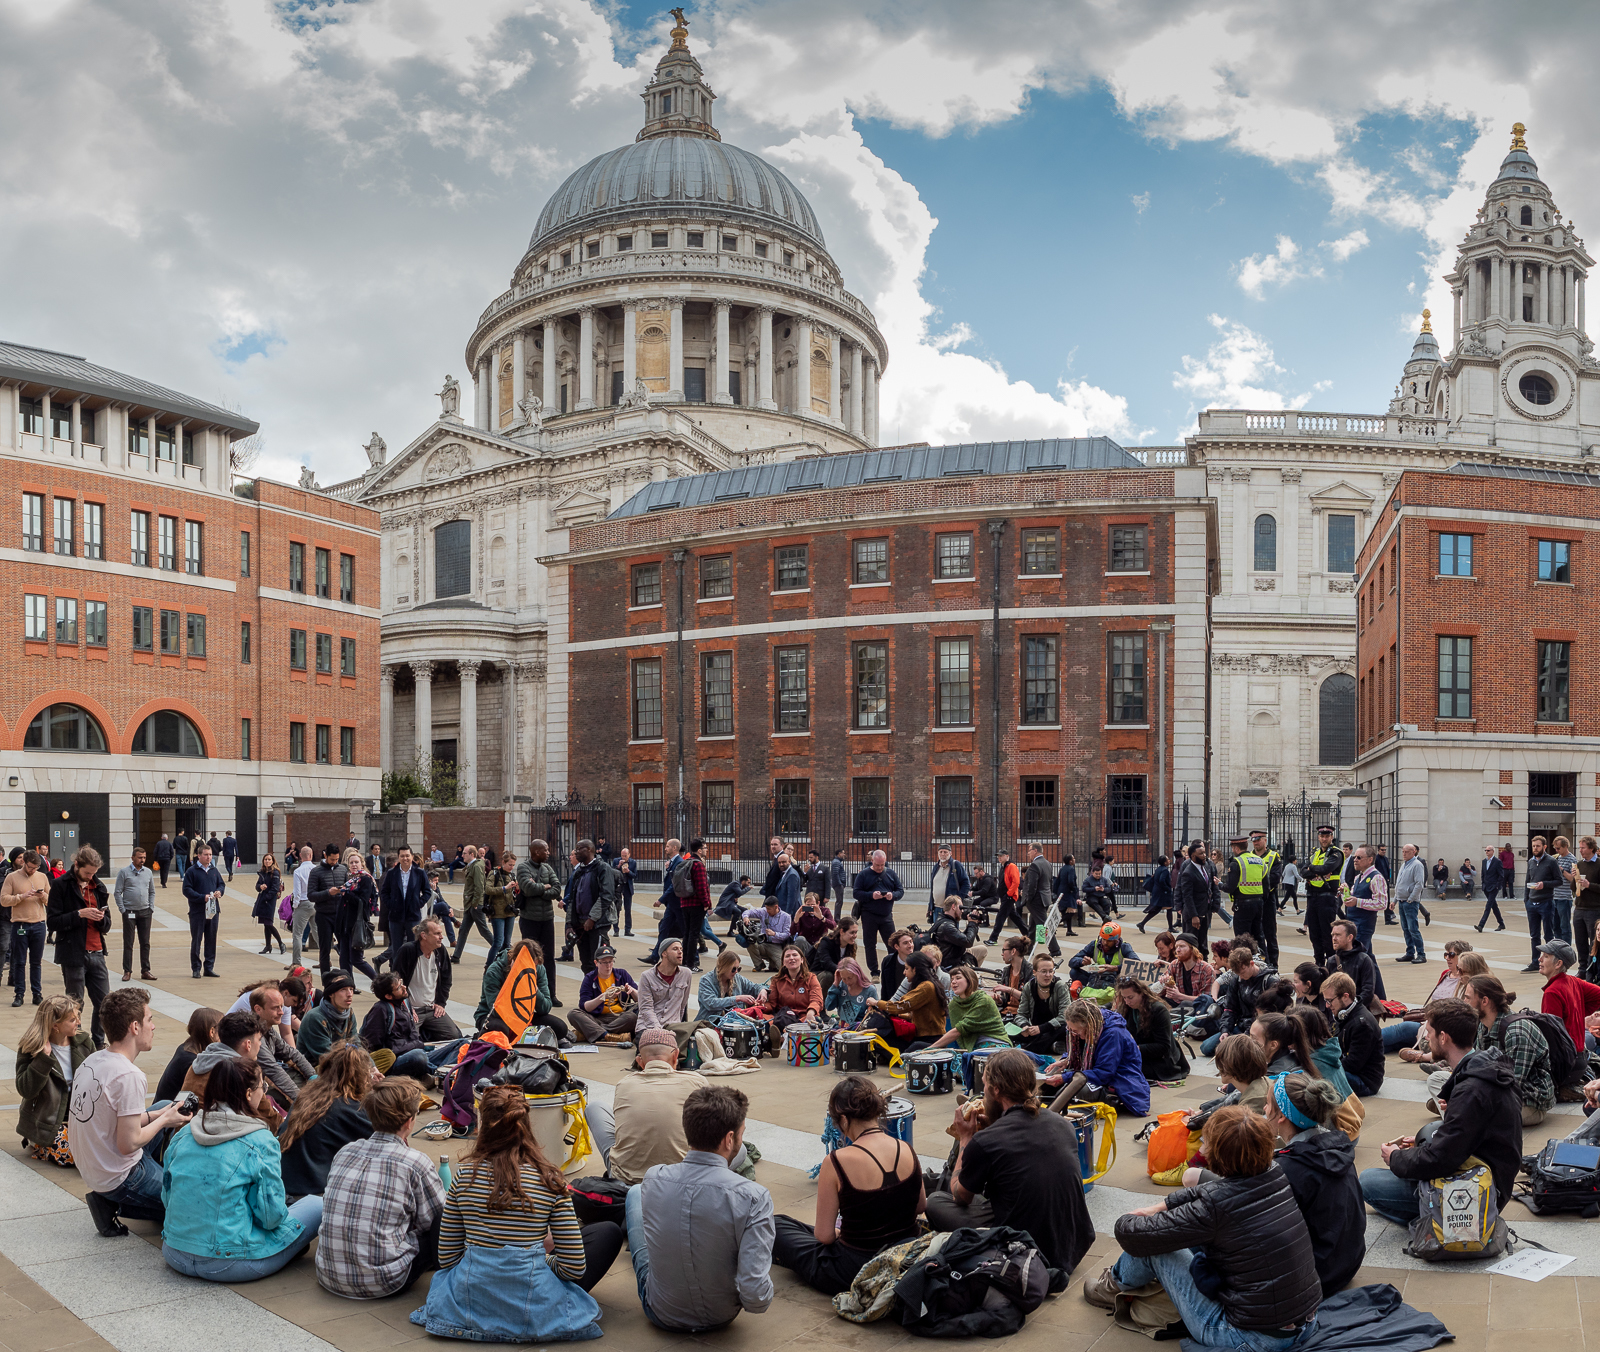 Taking a break in Paternoster Sq. Panorama of 5 overlapping pictures, stitched in Lightroom CC.